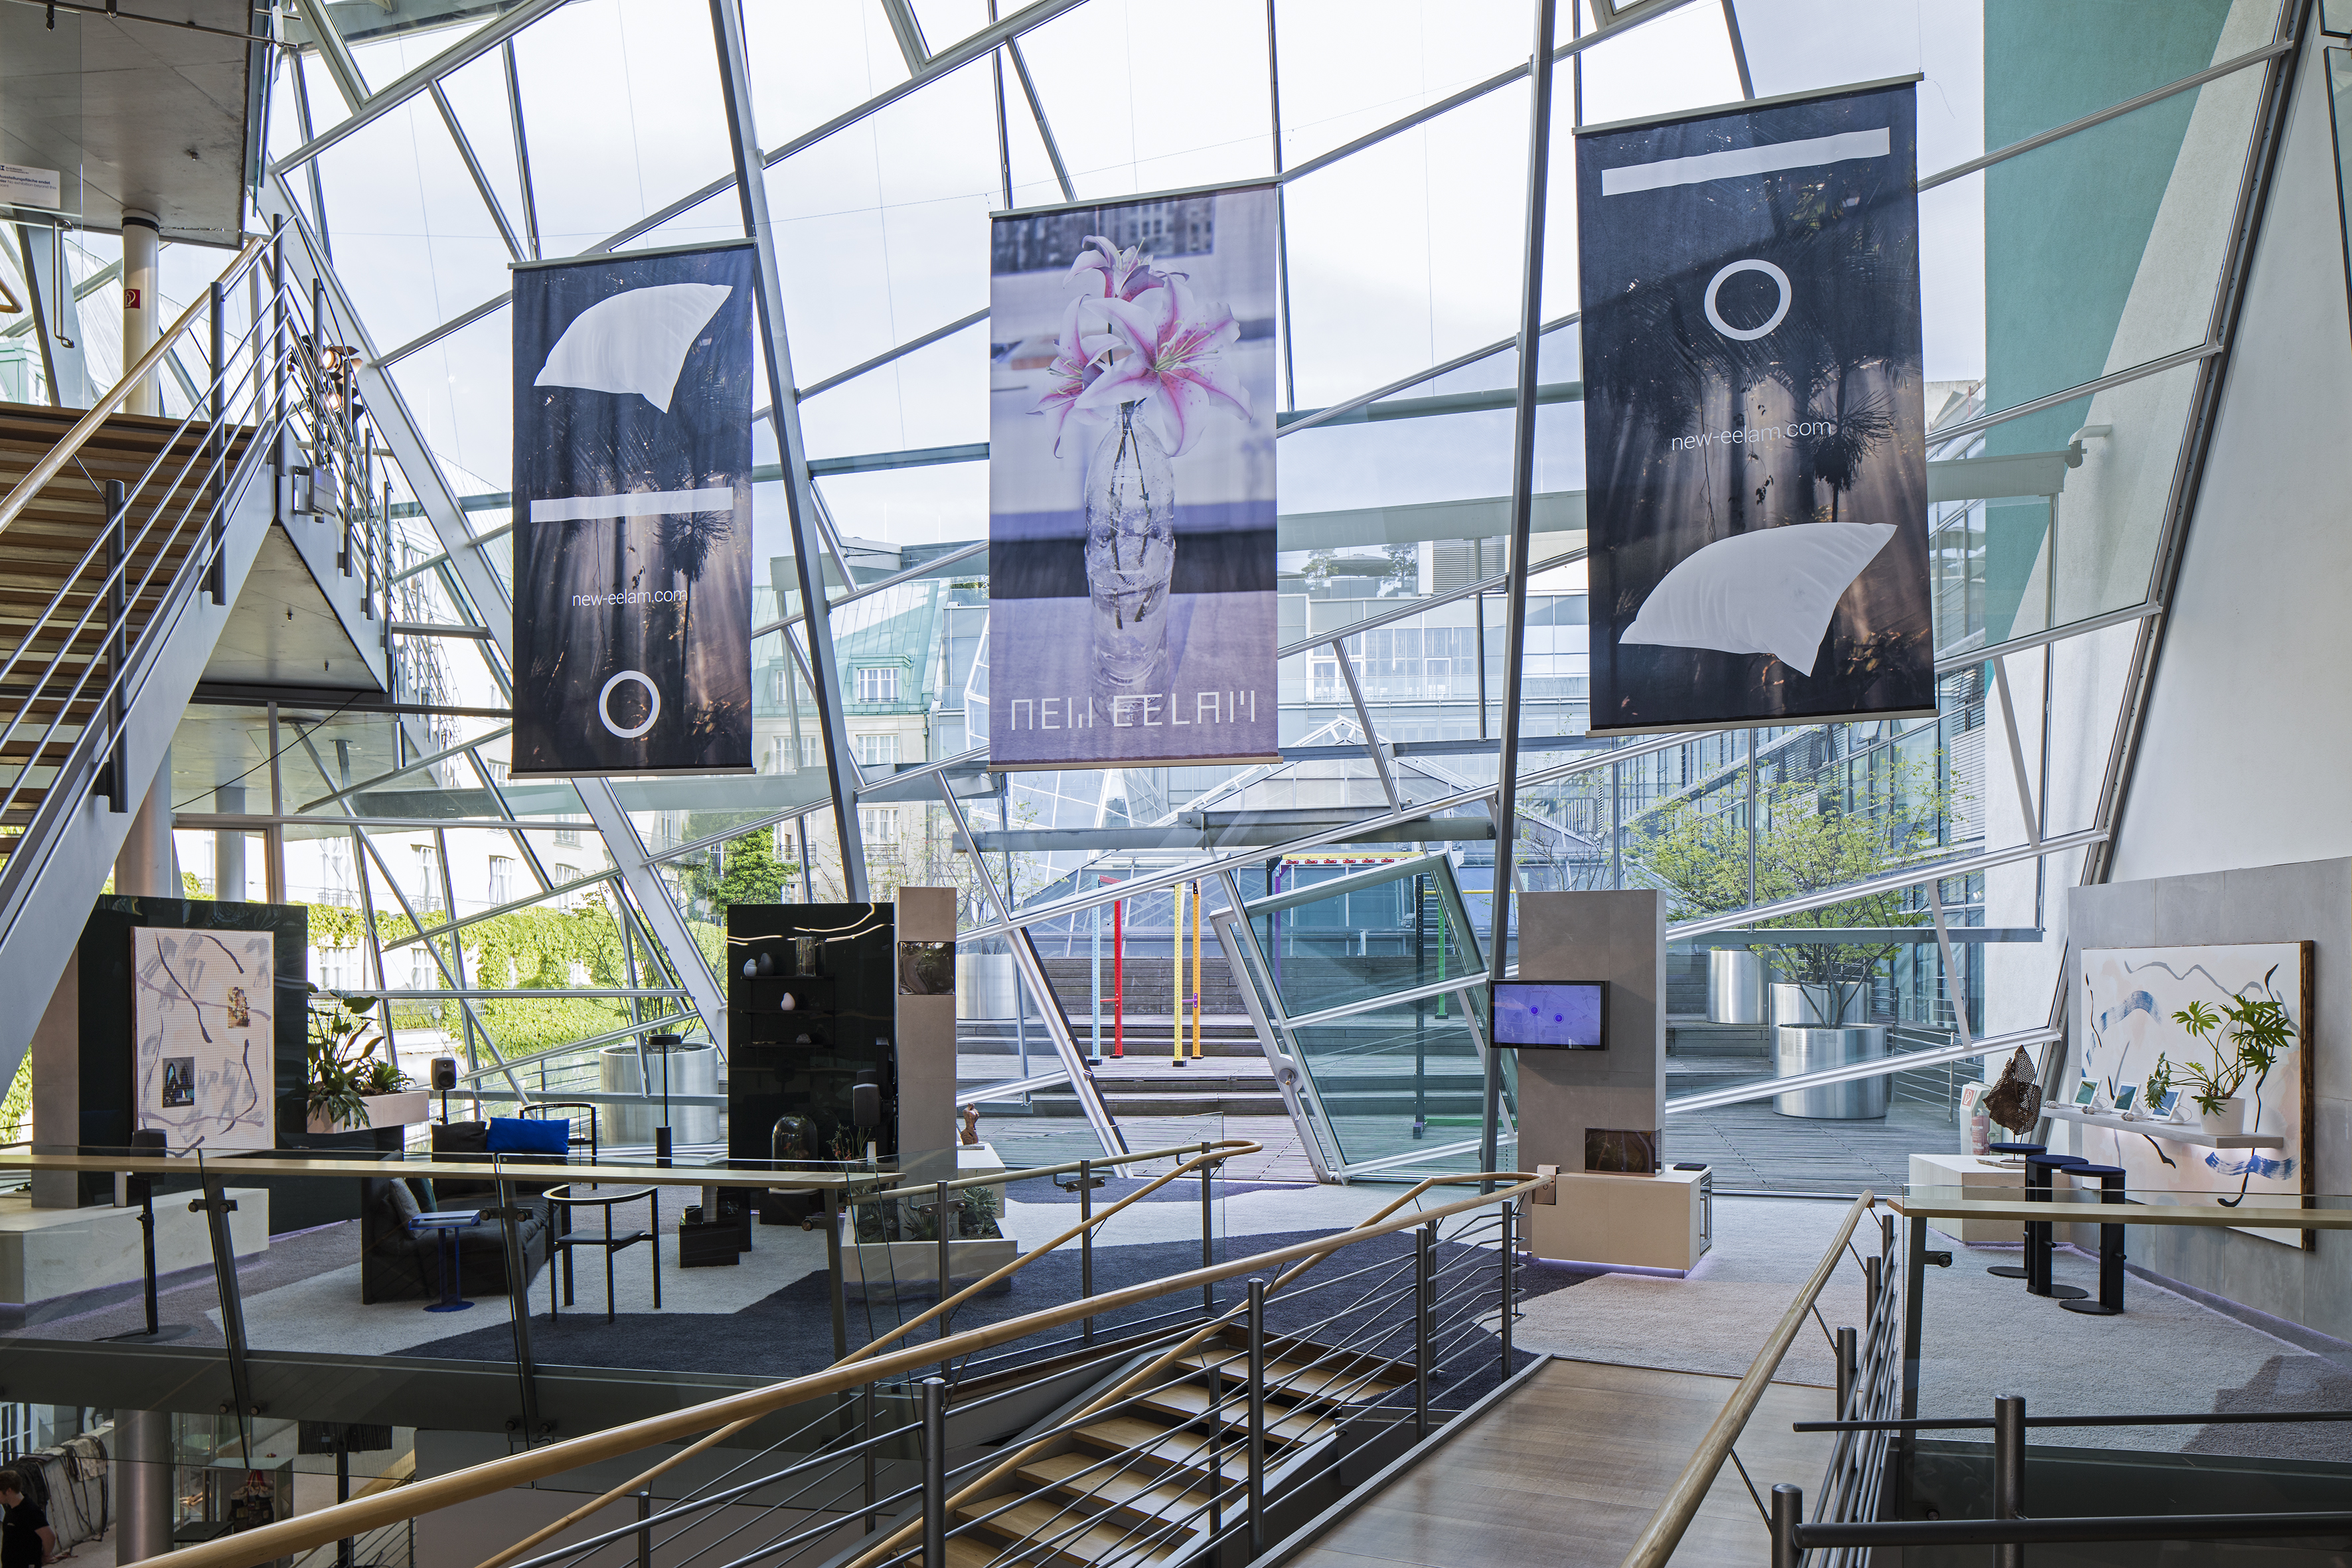 Image: Christopher Kulendran Thomas, Exhibition view, New Eelam, 2016. Mixed media. Developed in collaboration with Annika Kuhlmann. Film production: Klein and West and Mark Reynolds. Design: Manuel Bürger and Jan Gieseking. Architecture: Martti Kalliala. Production design: Marcelo Alves. Biosphere: Matteo Greco. Creative Director: Annika Kuhlmann. Courtesy Christopher Kulendran Thomas; New Galerie, Paris. Photo: Timo Ohler.